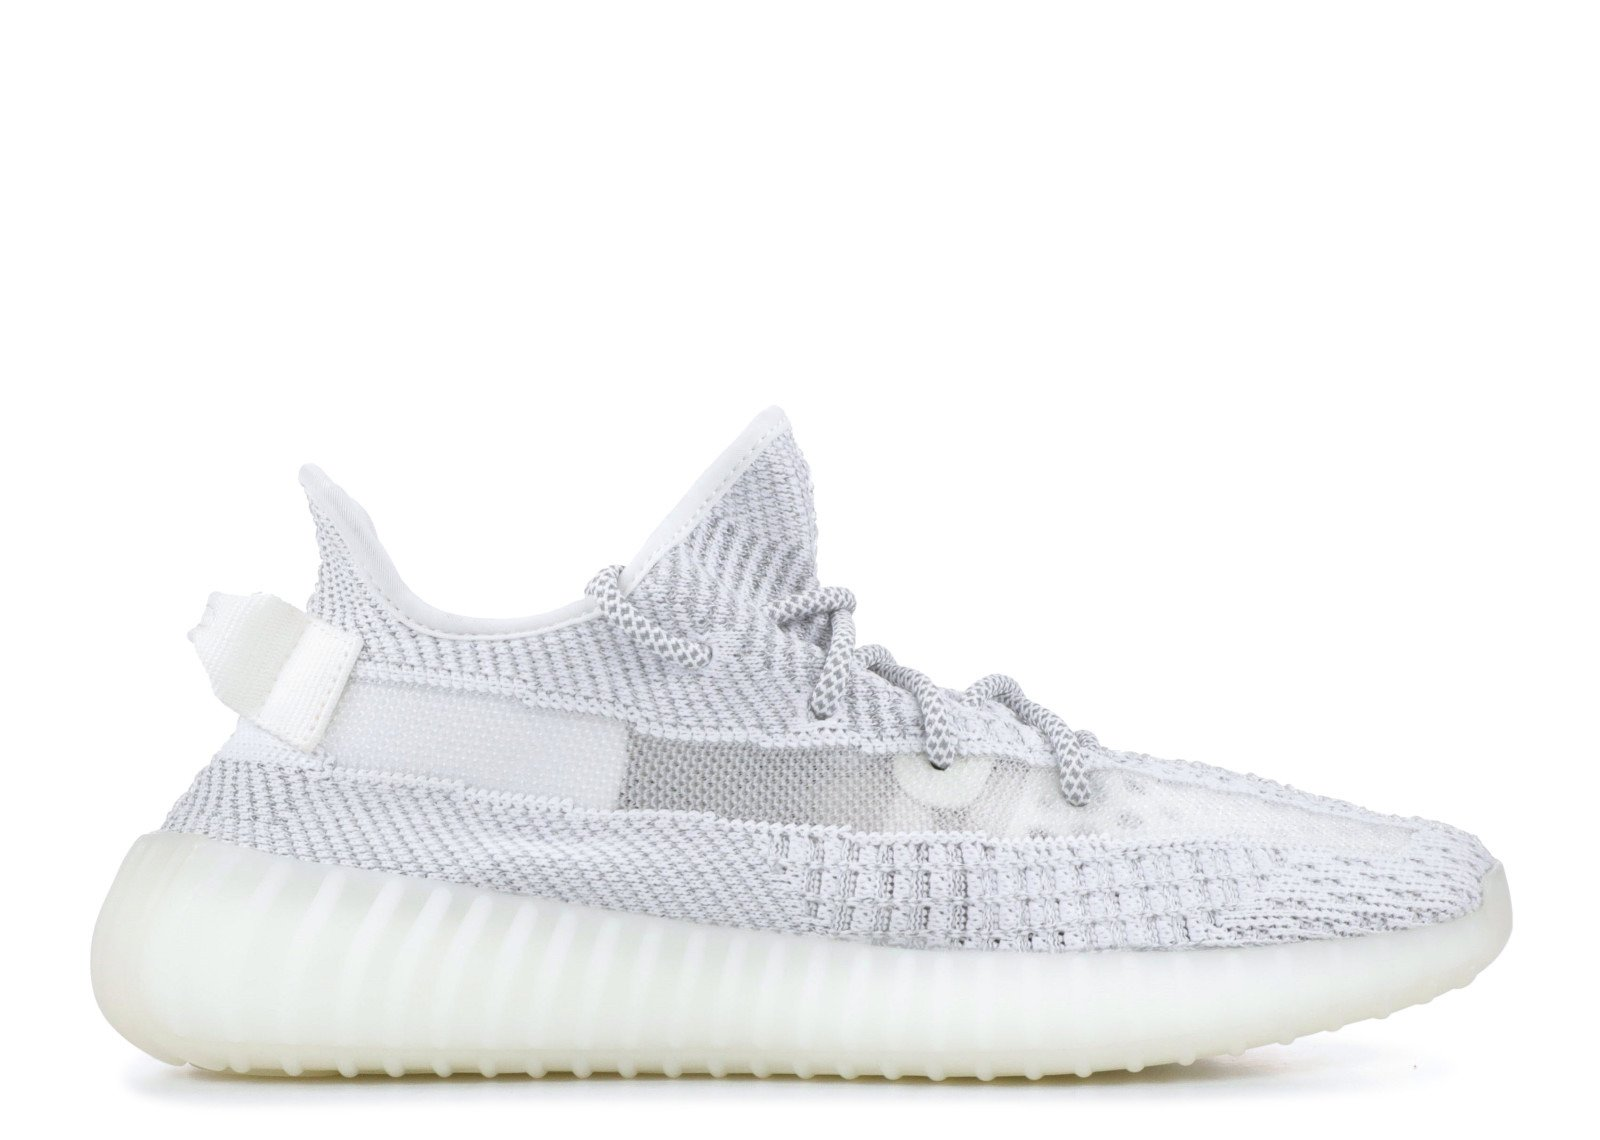 hot sale online 738c4 eed02 Adidas Yeezy Boost 350 V2 3M Static Reflective Shoes - EF2367 for Custom